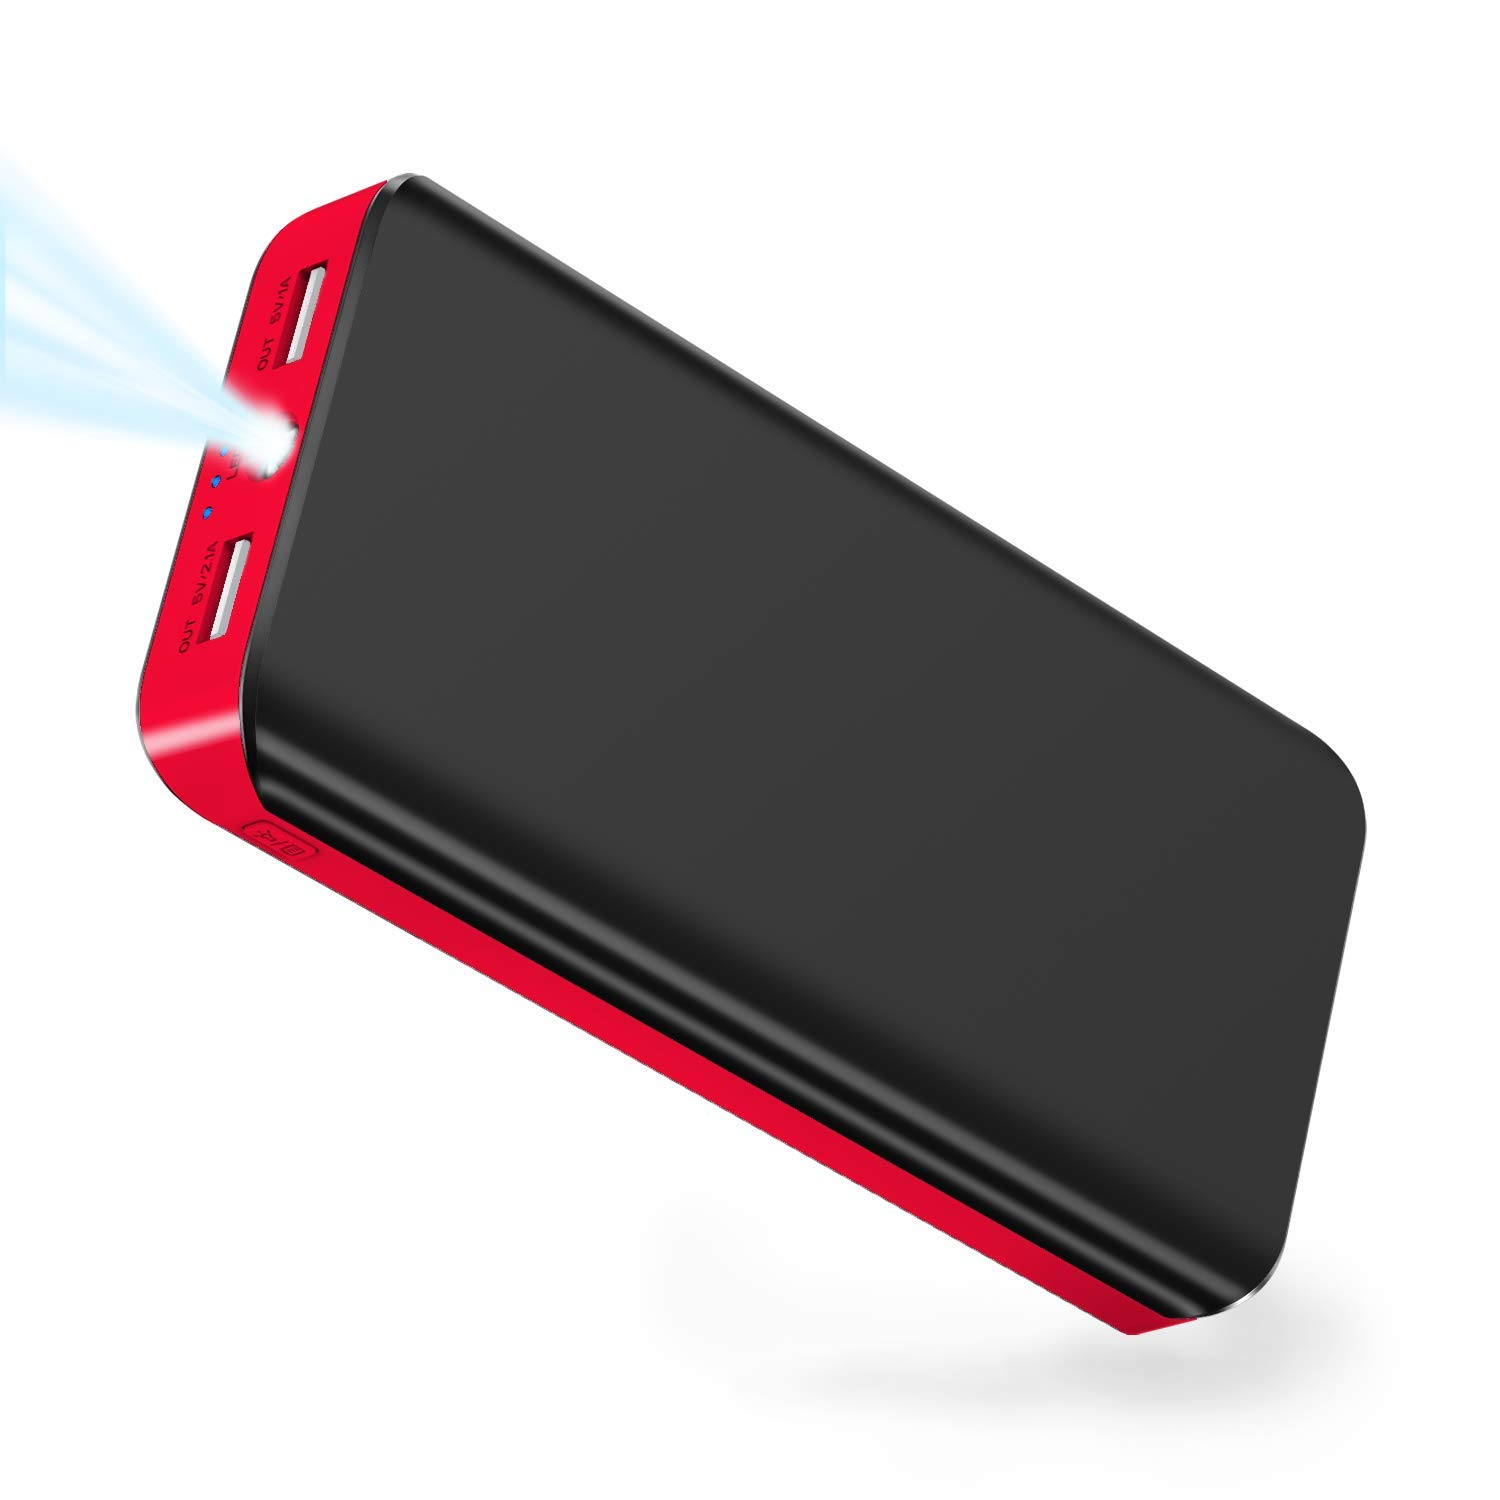 Power Bank 25000mAh LBell Portable Phone Charger External Battery High Capacity with Dual Output Port Emergency LED Flashlight Compatible for iPhone iPad Samsung Huawei Android Tablet PSP Camera by LBell